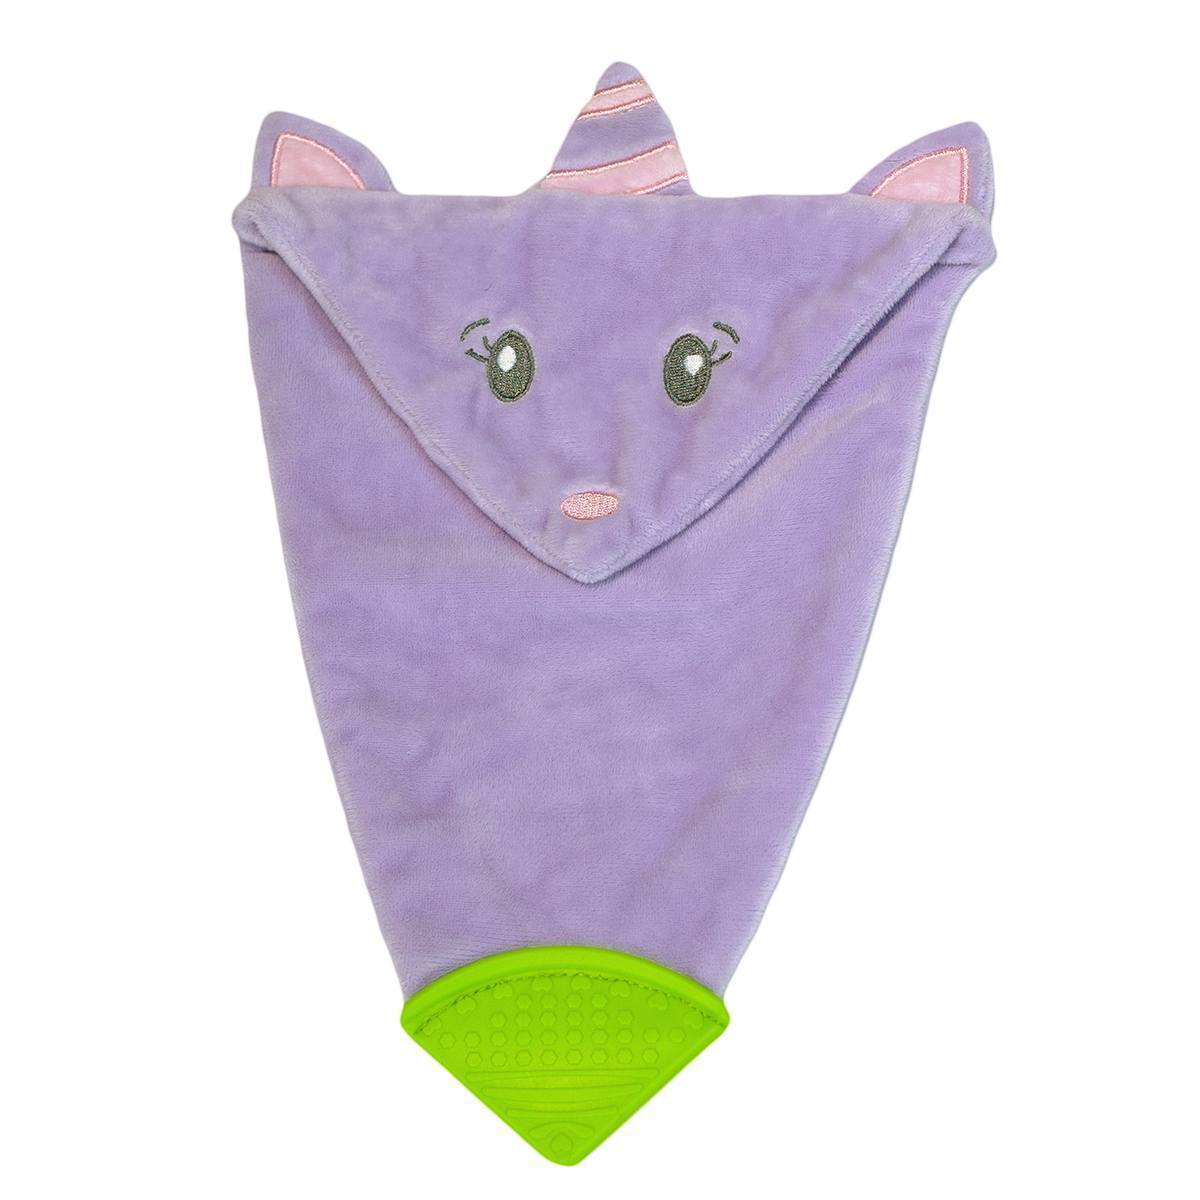 Kitty Corn Teether - Goosewaddle